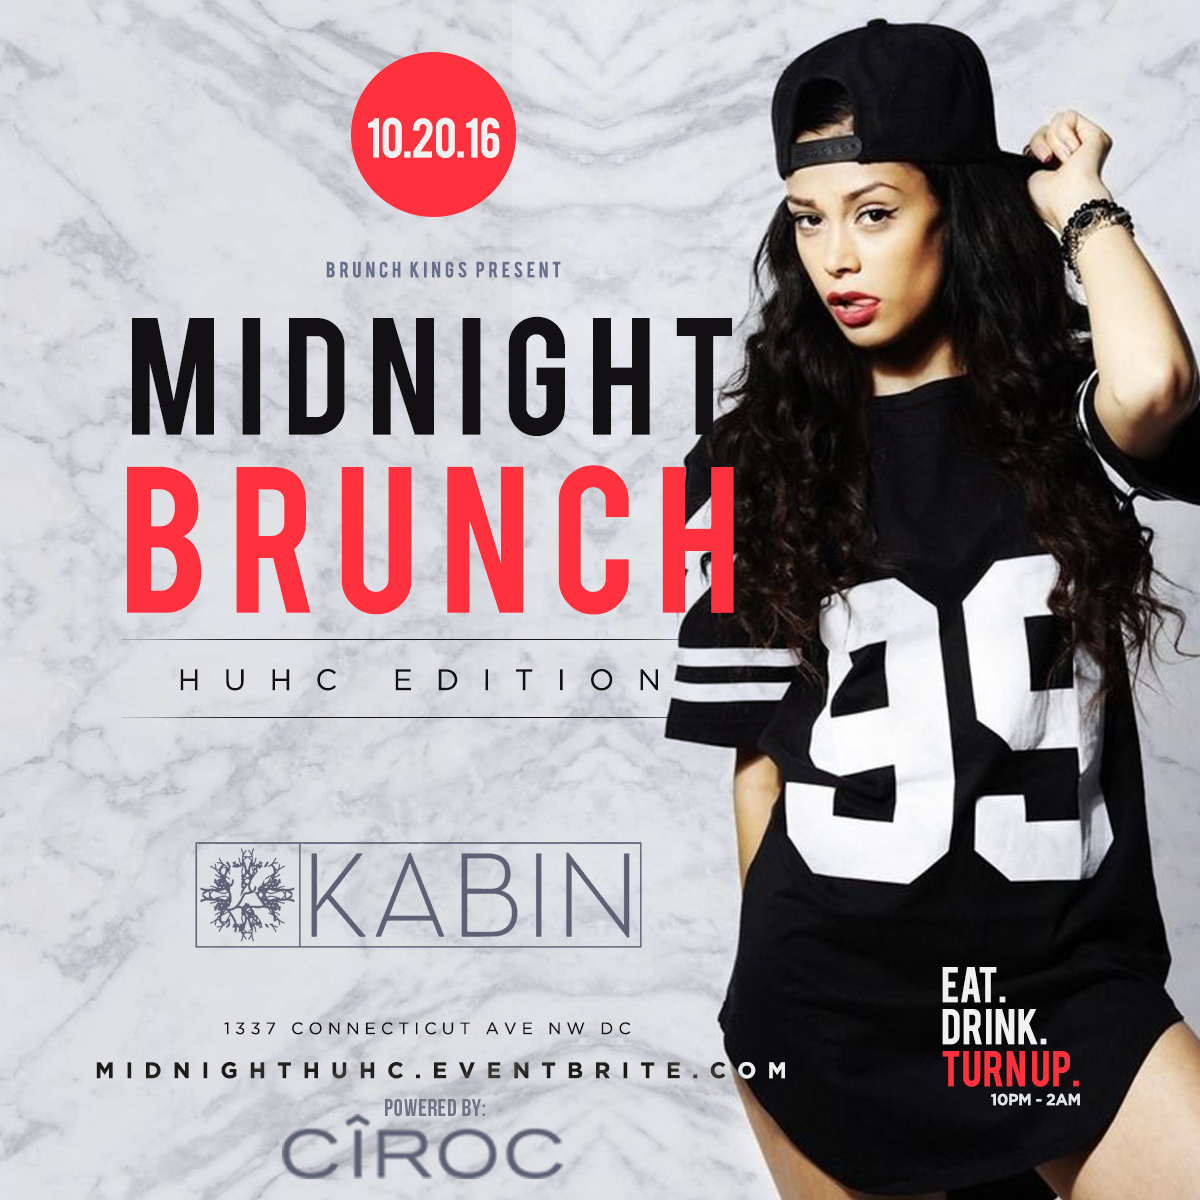 #Midnight Brunch   10/20/16 10pm-2am Kabin 1337 Connecticut Ave NW Washington, DC  MidnightHUHC.Eventbrite.com